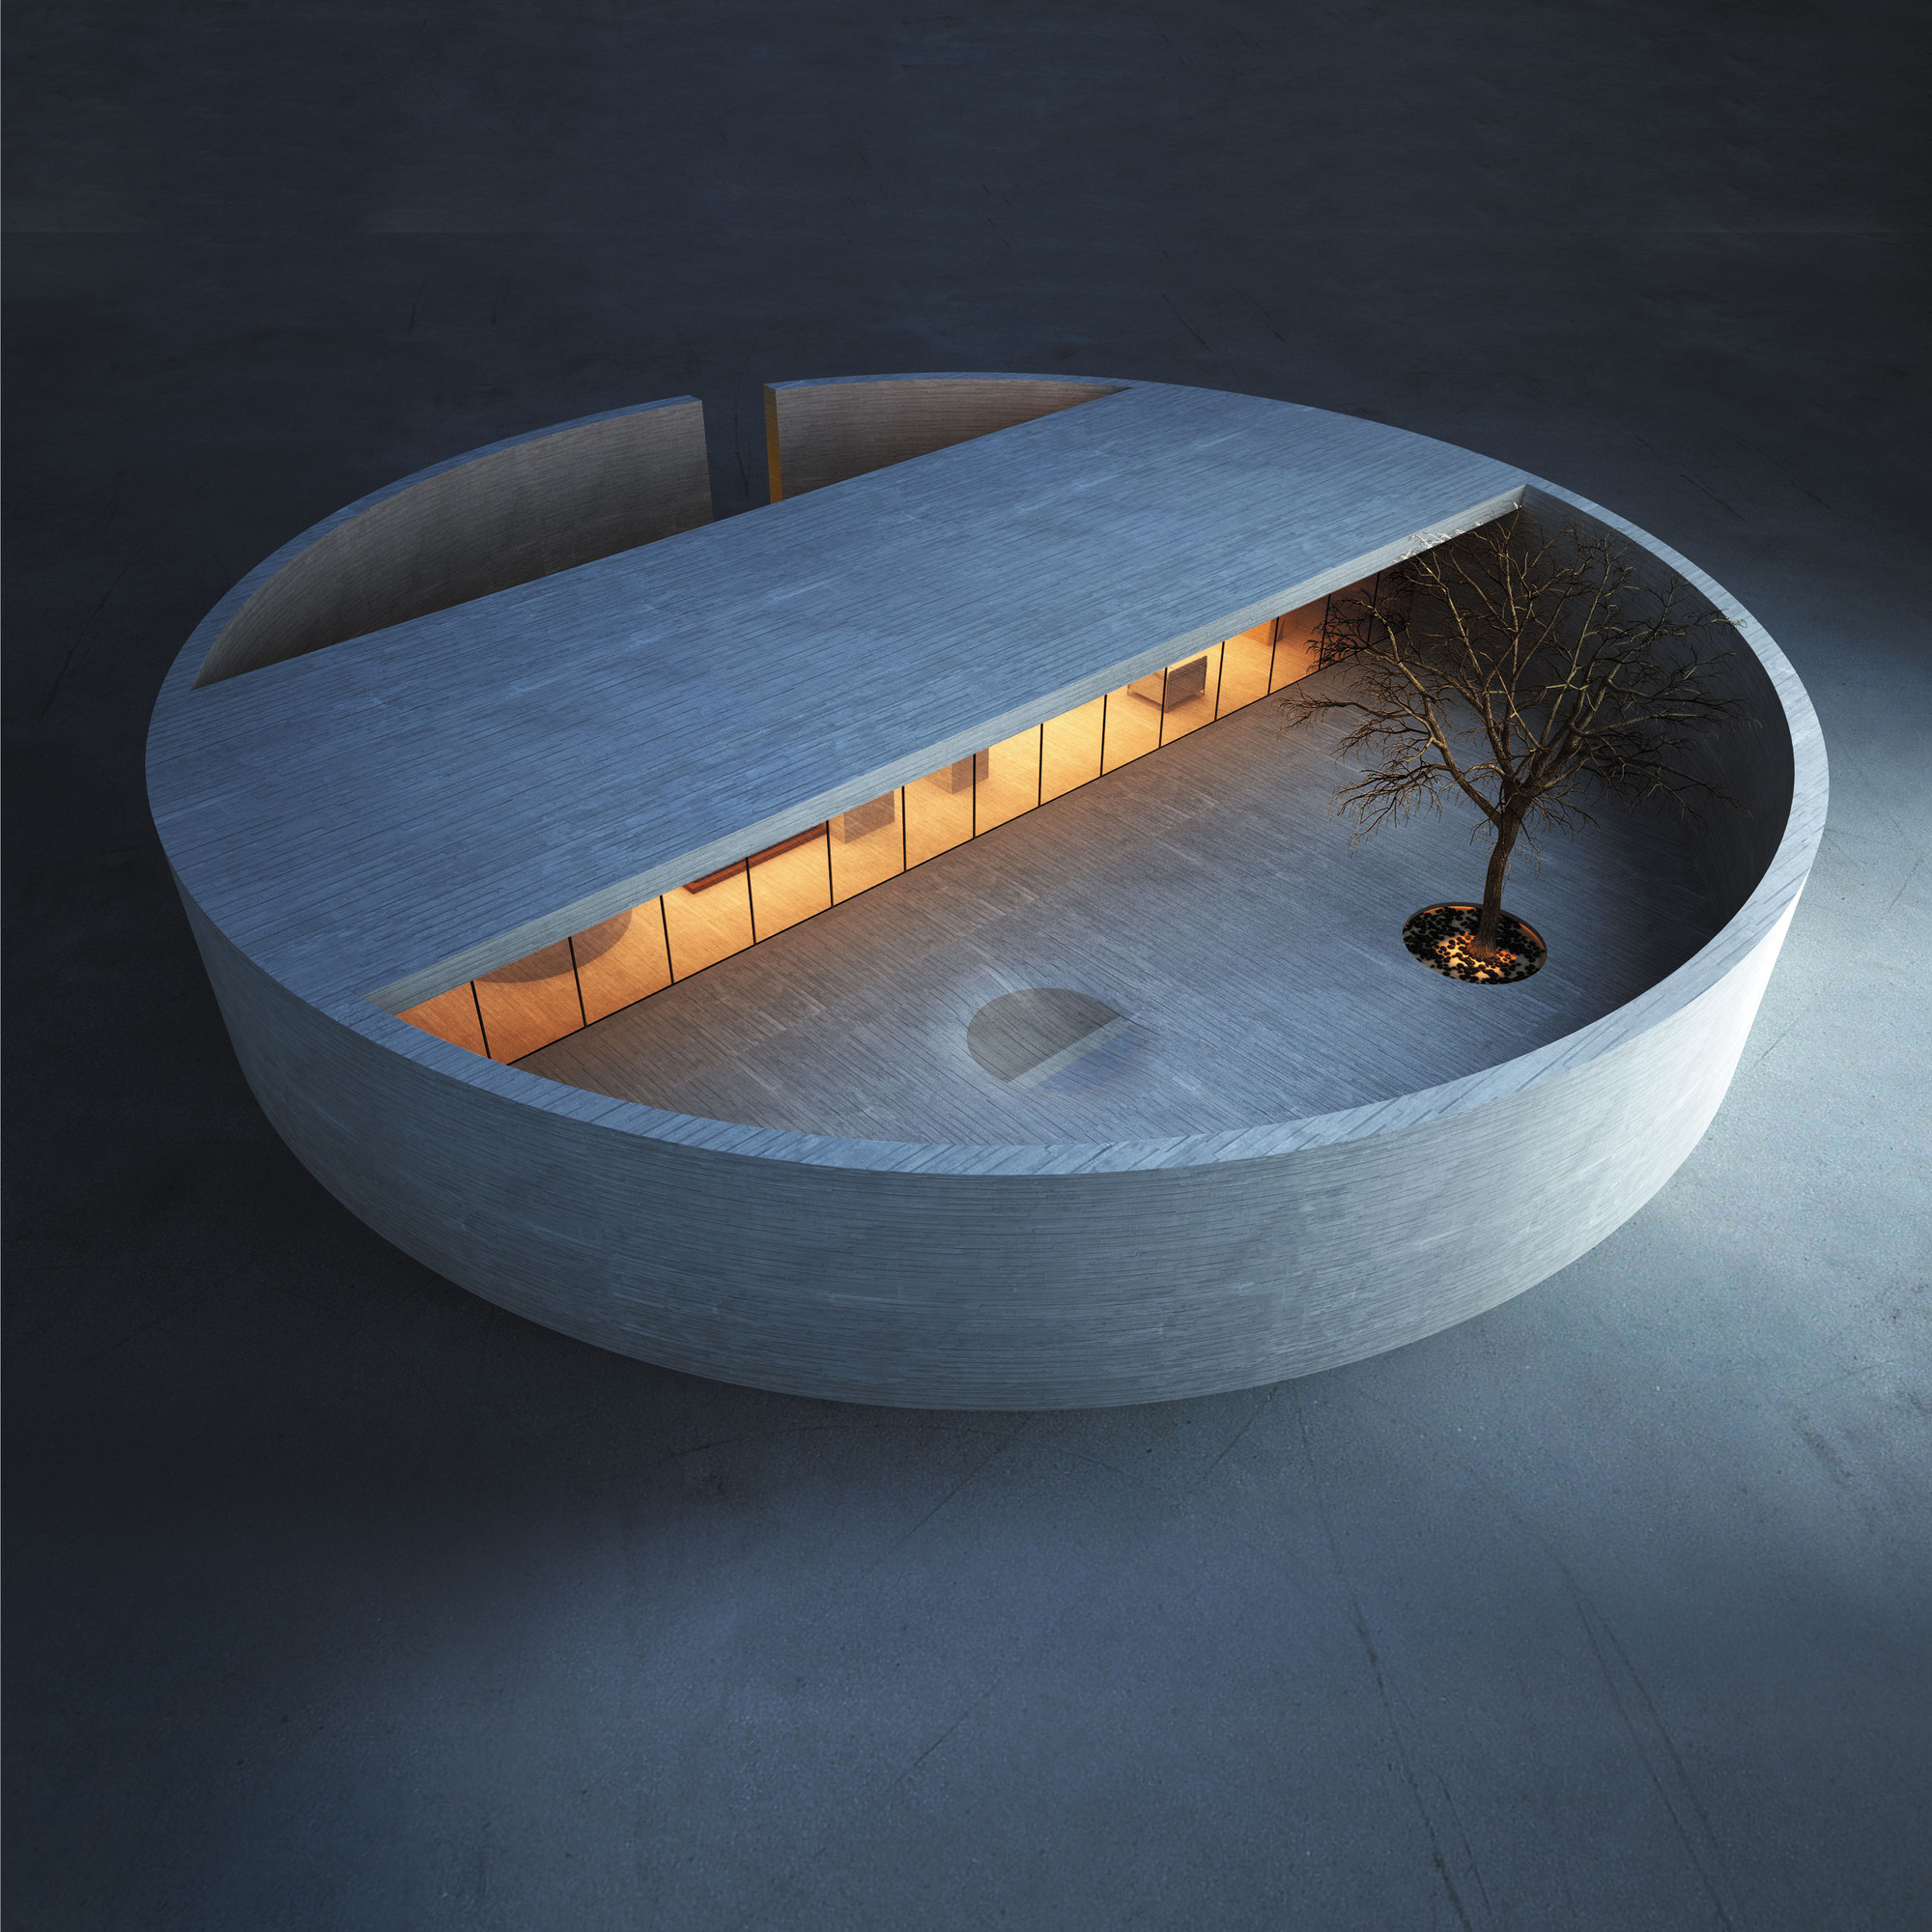 The Ring House Mz Architects